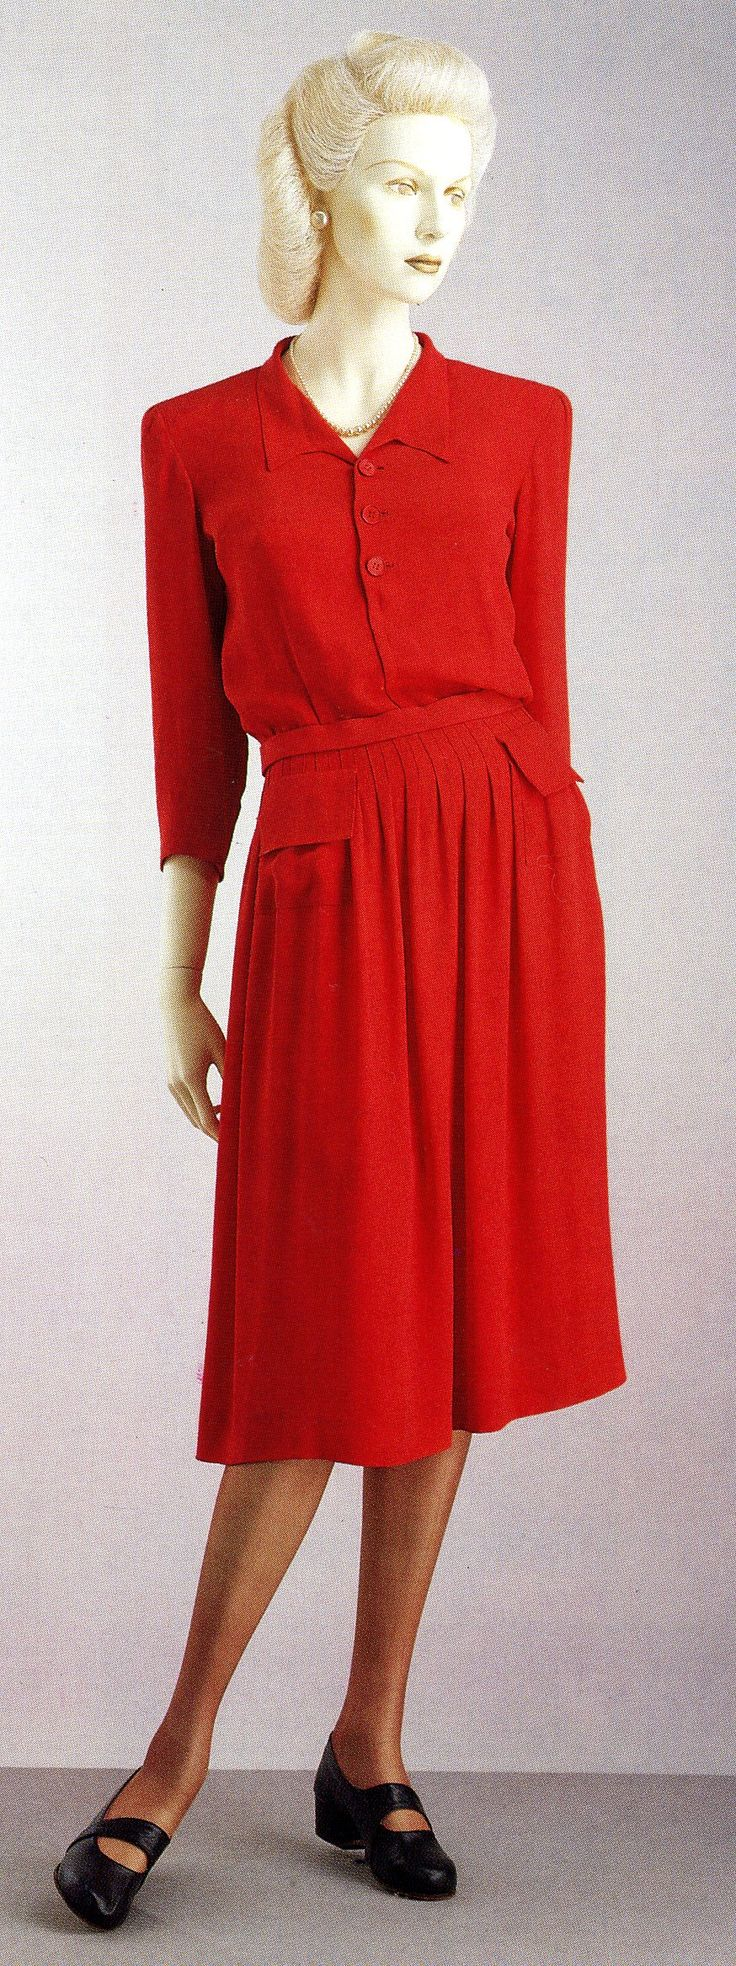 """""""Utility"""" dress, c.1940s. The British government introduced the Utility Clothing Scheme to address the shortage of labor and materials during and after WWII. Silhouettes were kept simple, but many were in fact commissioned from leading designers, such as Hardy Amies and Norman Hartnell."""